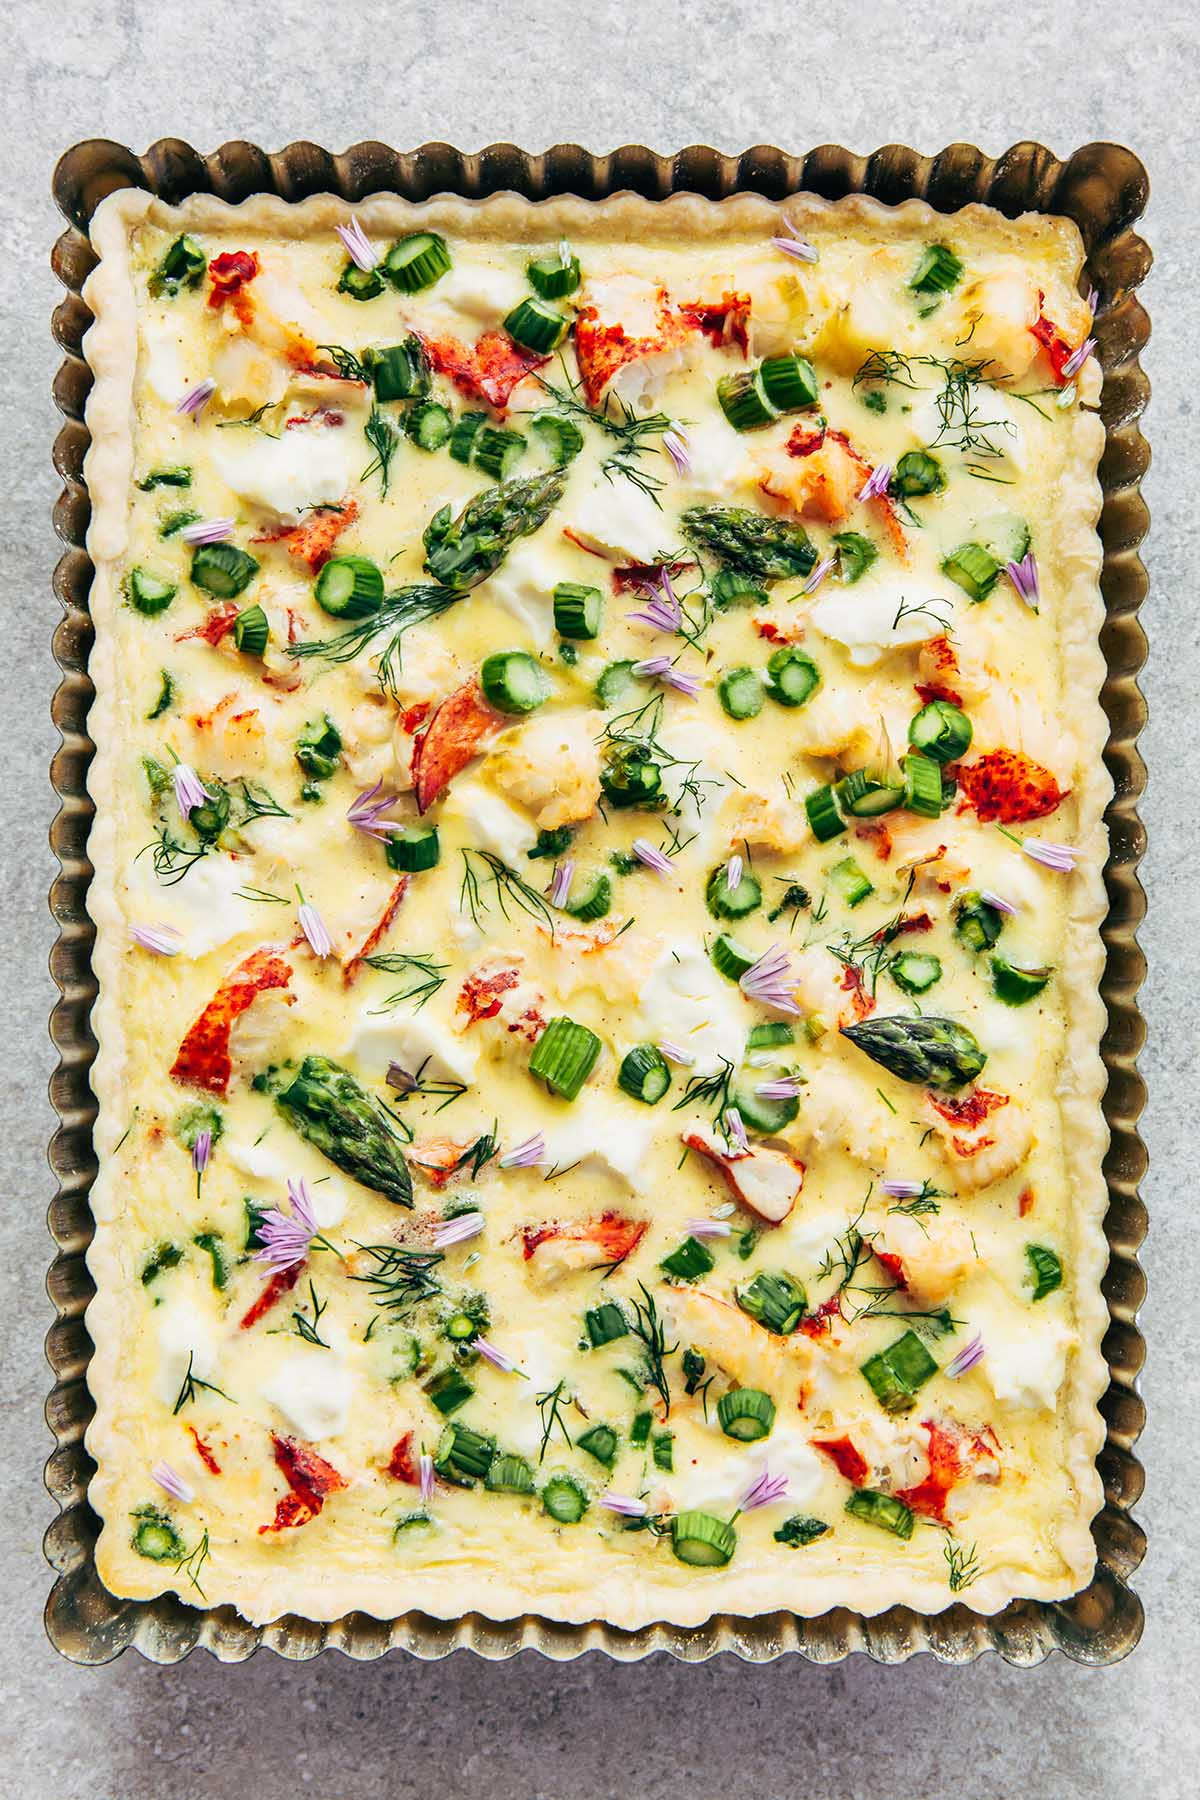 Overhead close up of a lobster quiche with cream cheese and asparagus in a rectangular metal tart tin on a stone surface.